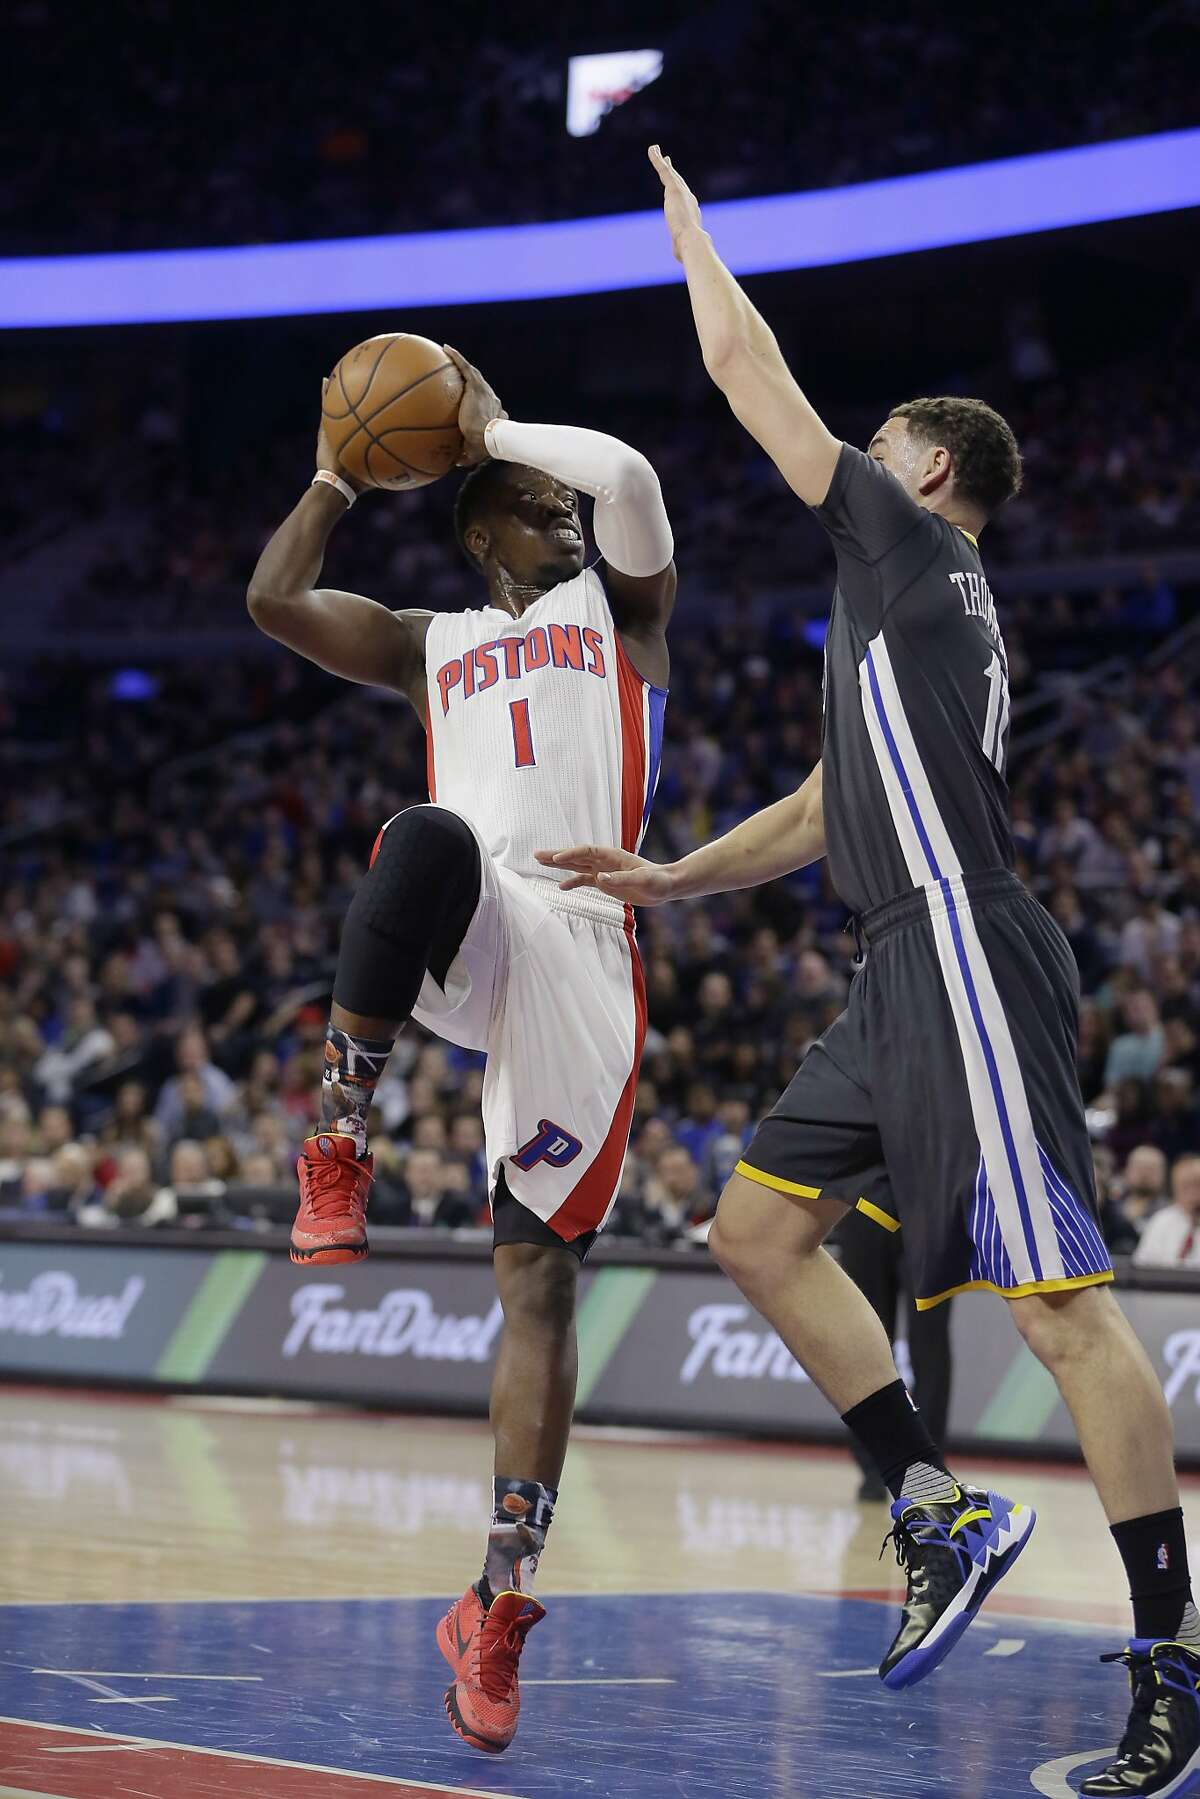 Detroit Pistons guard Reggie Jackson (1) shoots over Golden State Warriors guard Klay Thompson (11) during the first half of an NBA basketball game, Saturday, Jan. 16, 2016, in Auburn Hills, Mich. (AP Photo/Carlos Osorio)